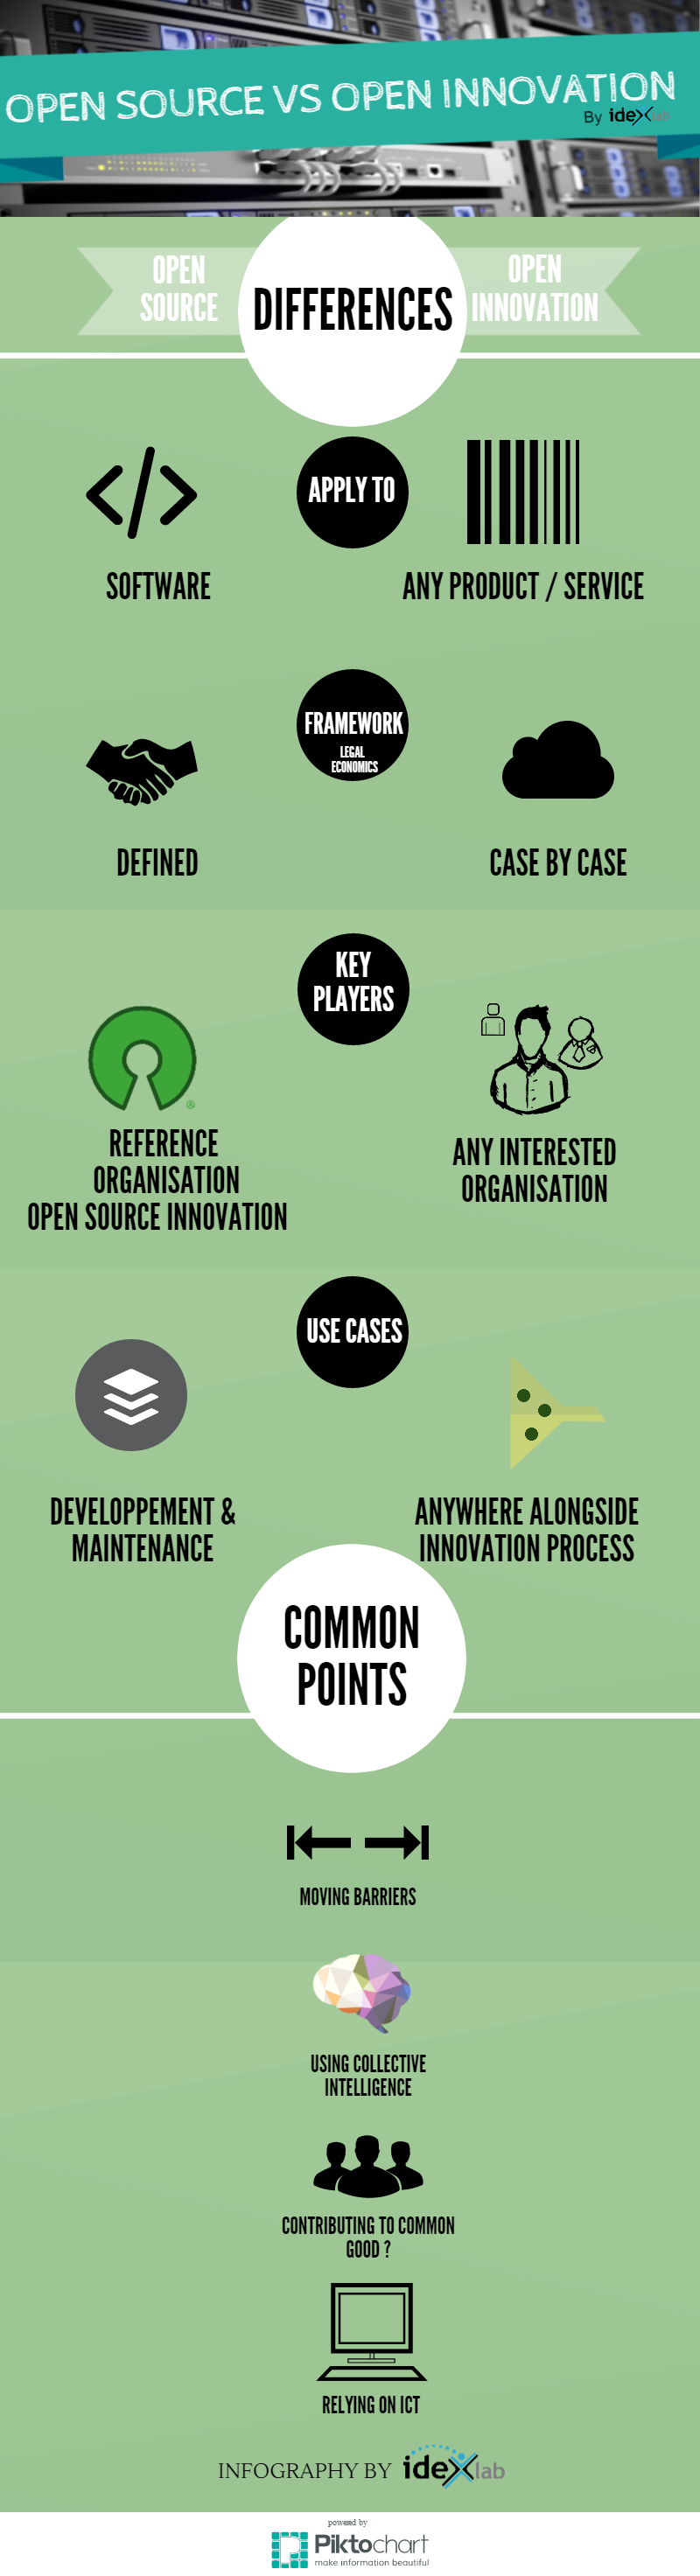 open source vs open innovation idexlab infography